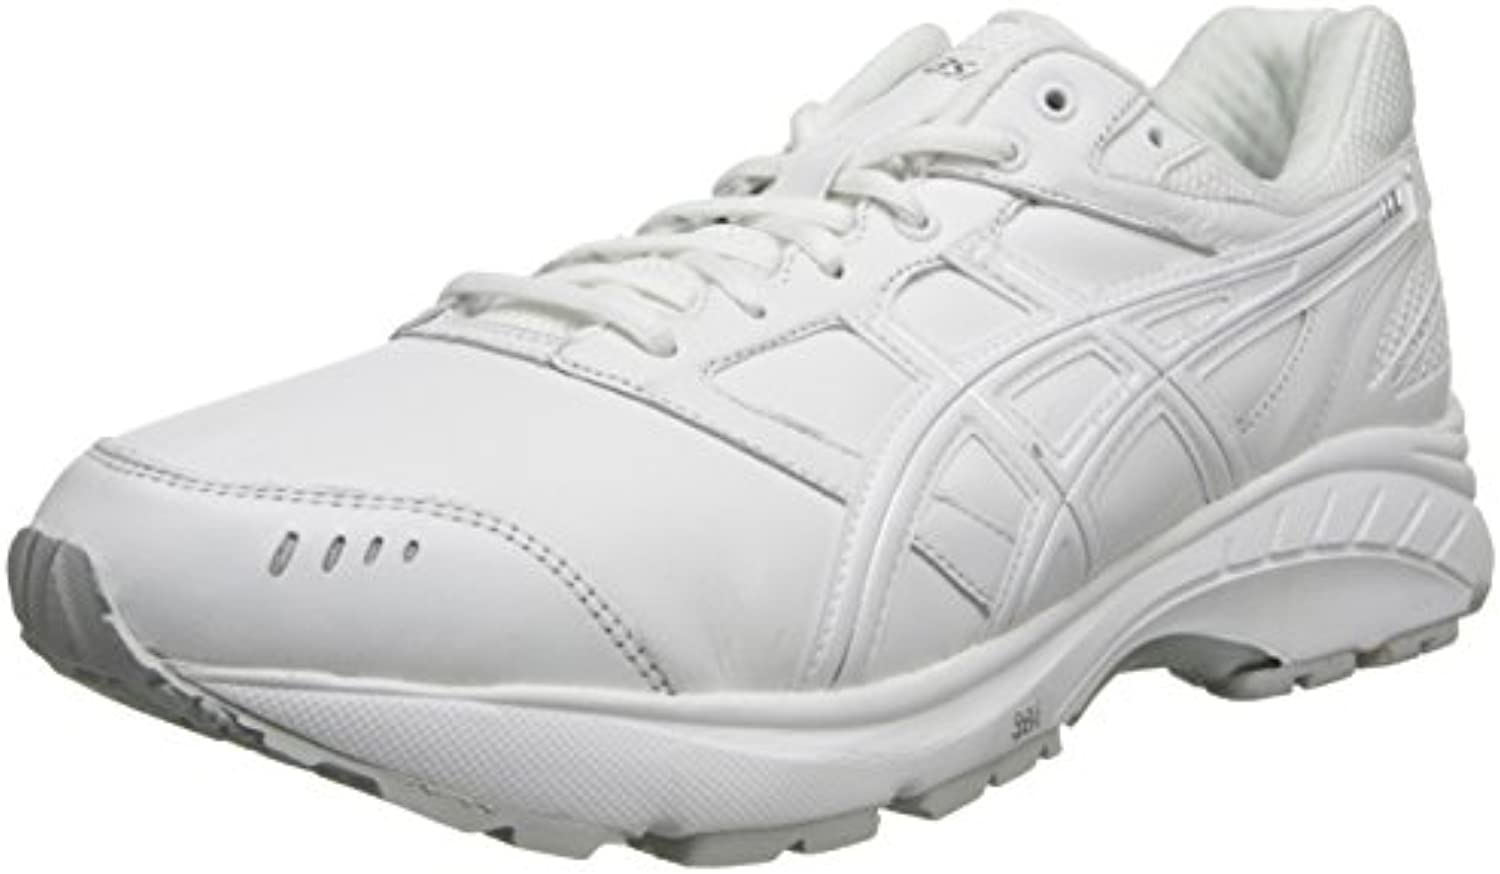 Asics Men's Gel Foundation Walker 3 (4E) Walking Shoe